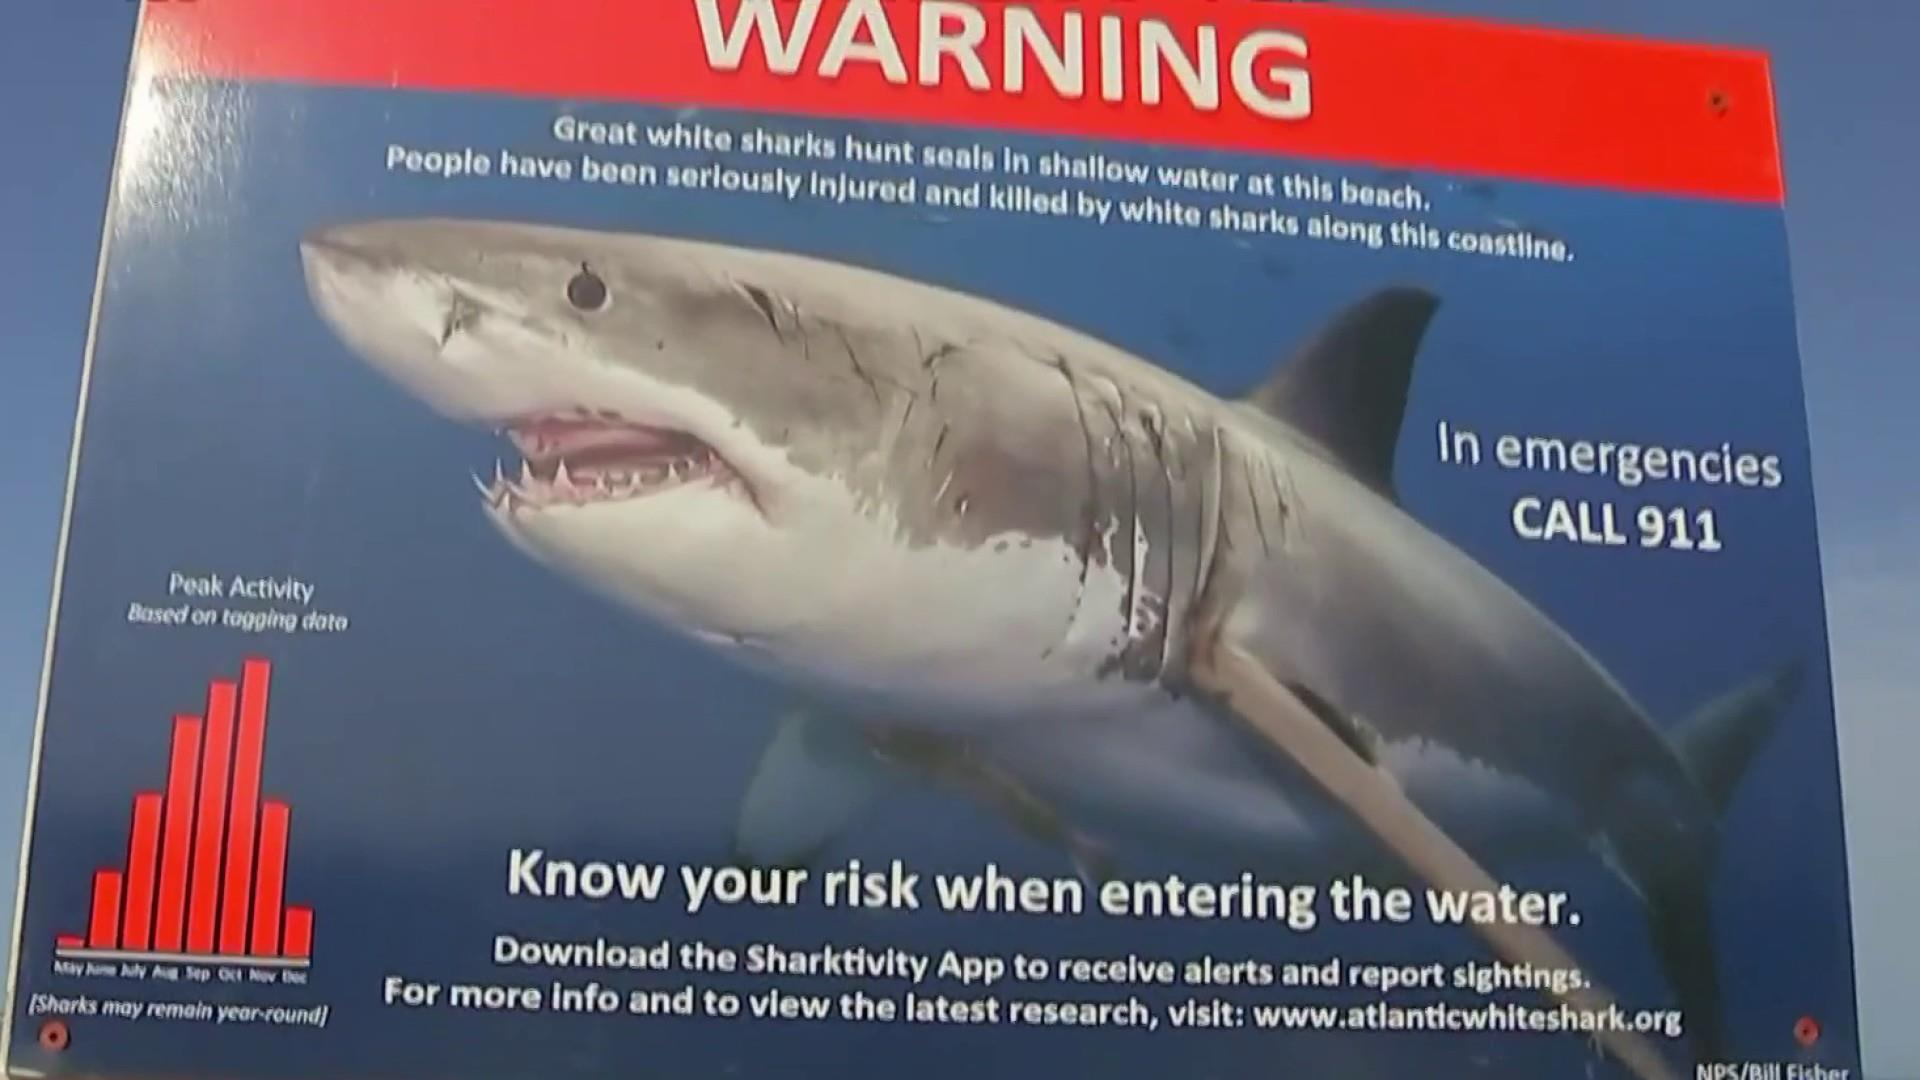 Recent shark incidents causing concerns for beachgoers